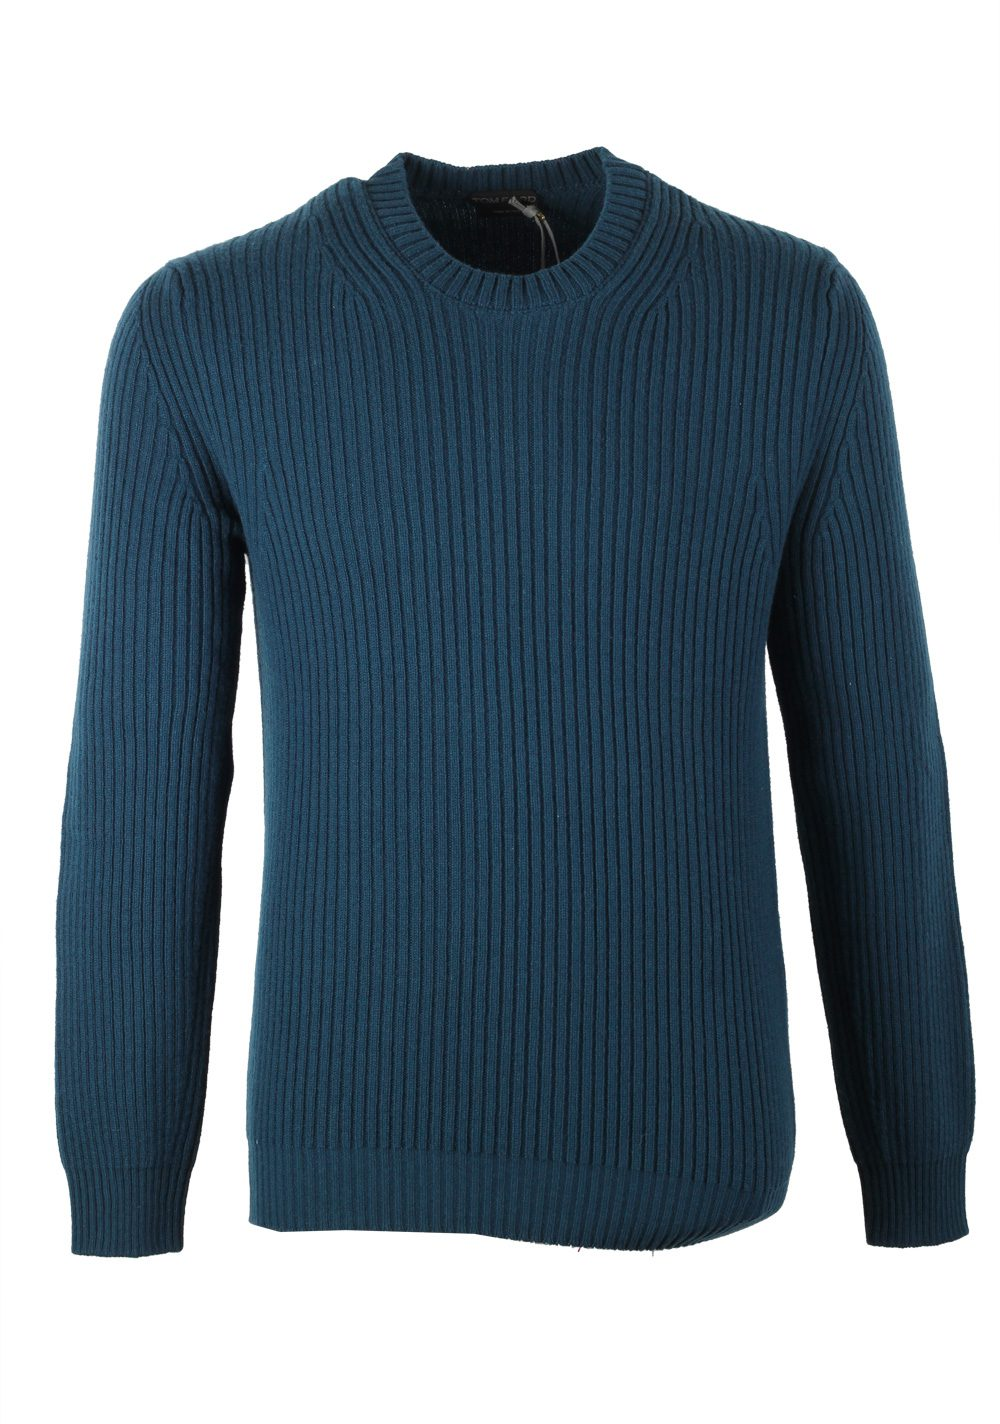 TOM FORD Blue Crew Neck Sweater Size 48 / 38R U.S. In Cashmere Blend | Costume Limité